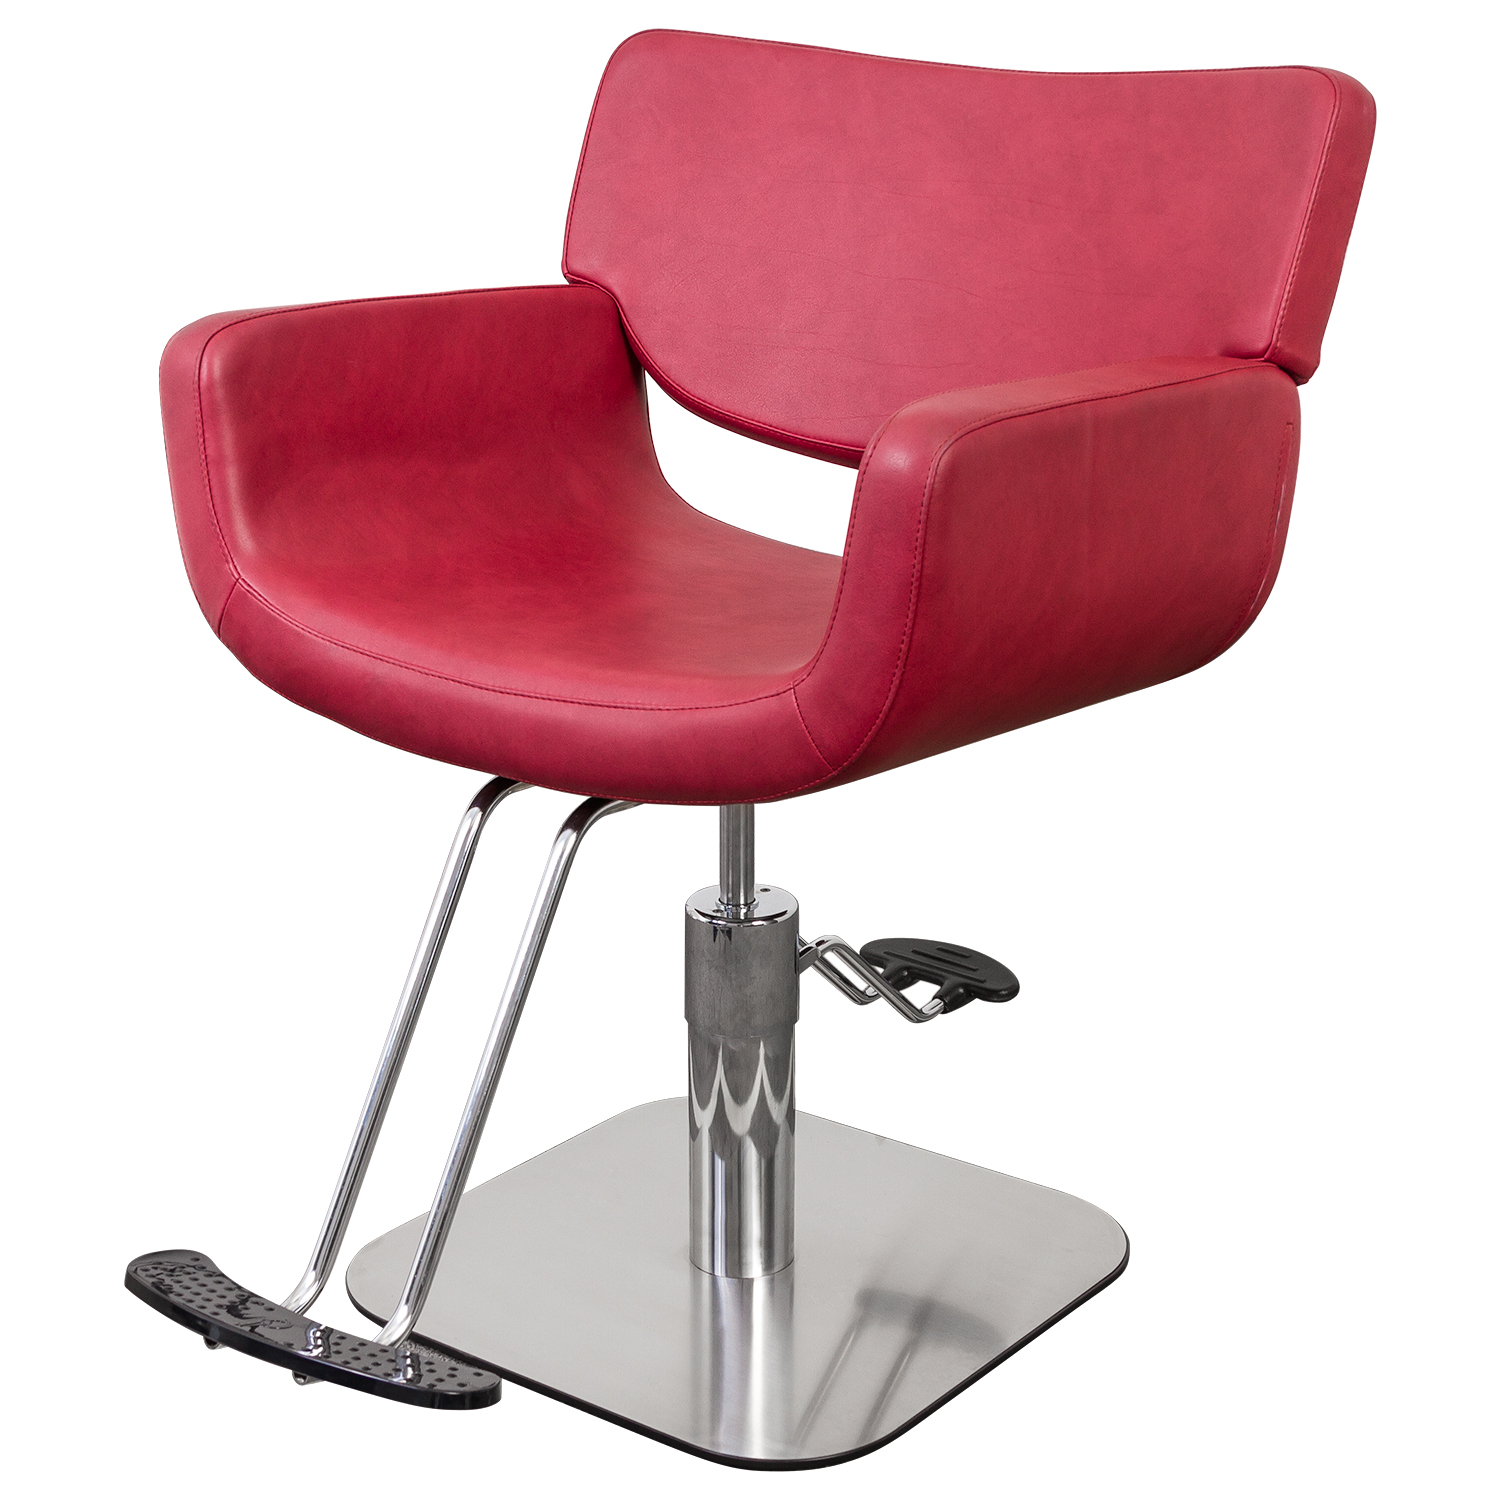 Quadro Hair Salon Chair by Salon Ambience alternative product image 9